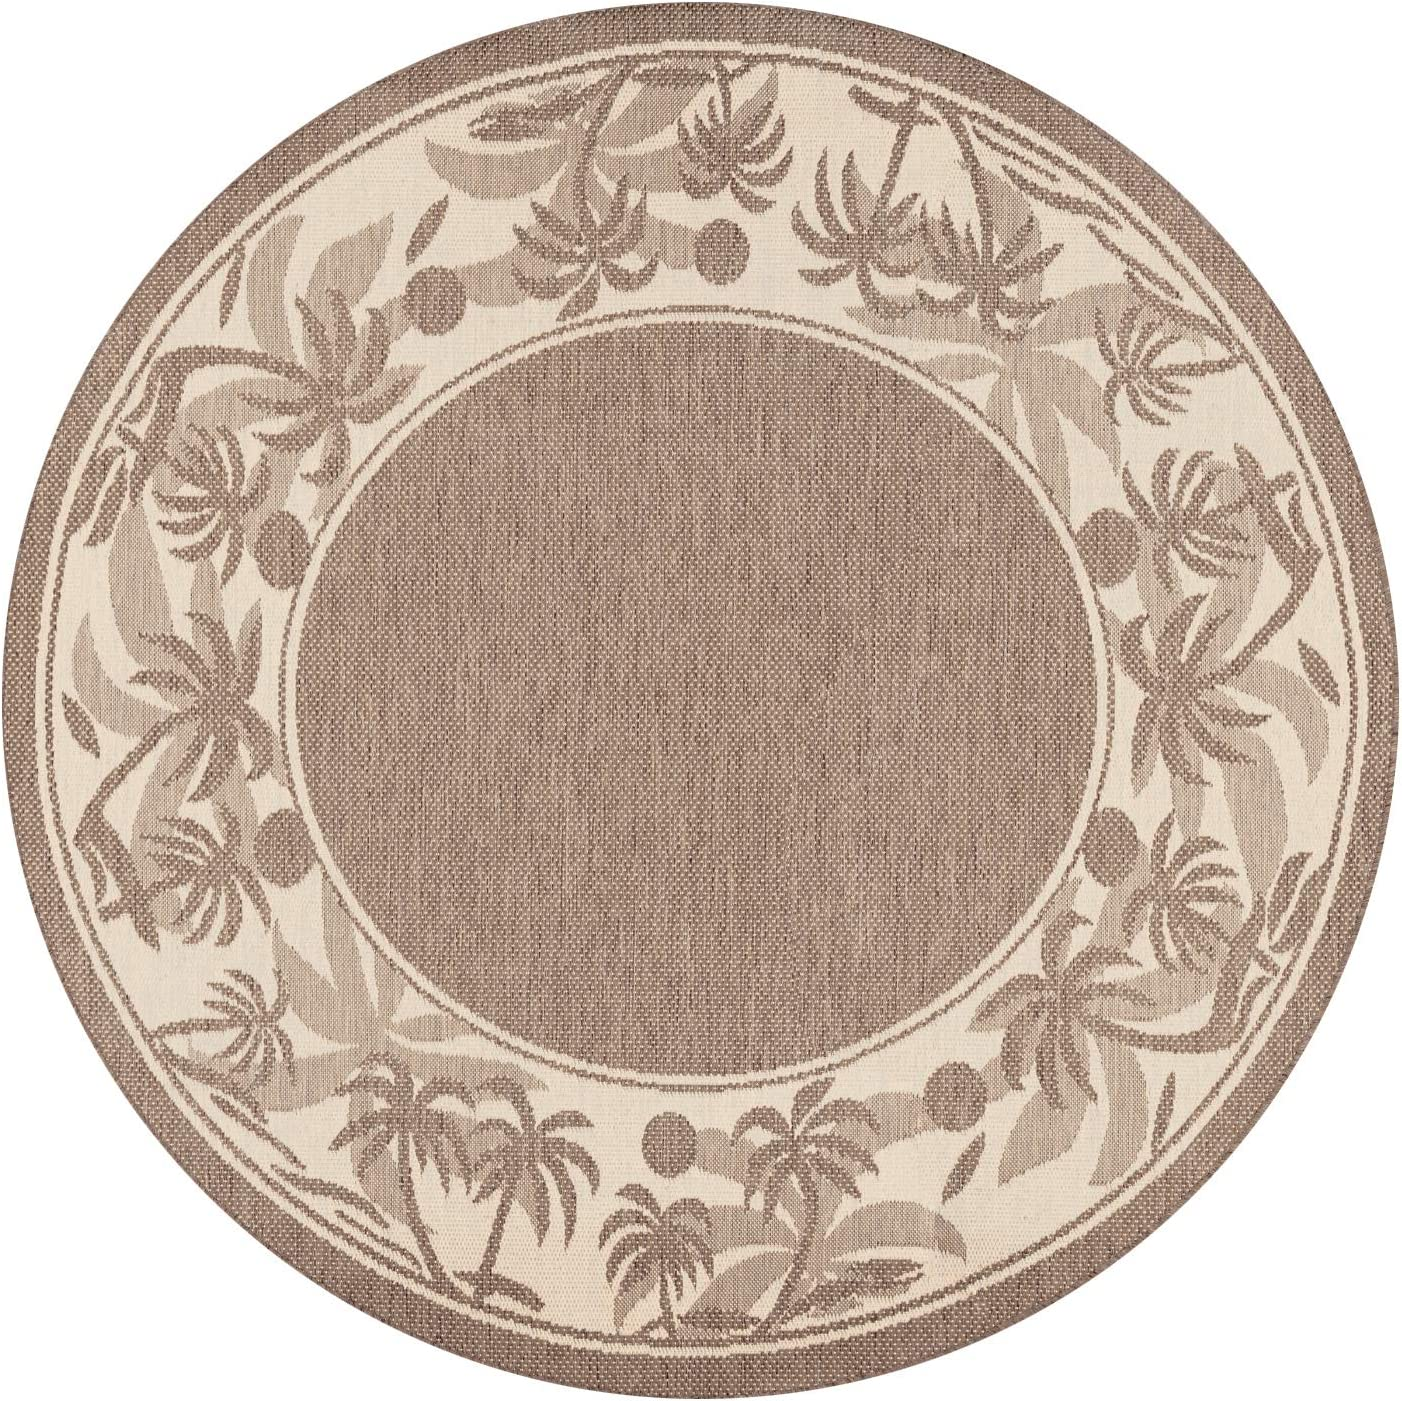 Couristan 1222 0722 Recife Island Retreat Beige Natural Rug, 7-Feet 6-Inch Round